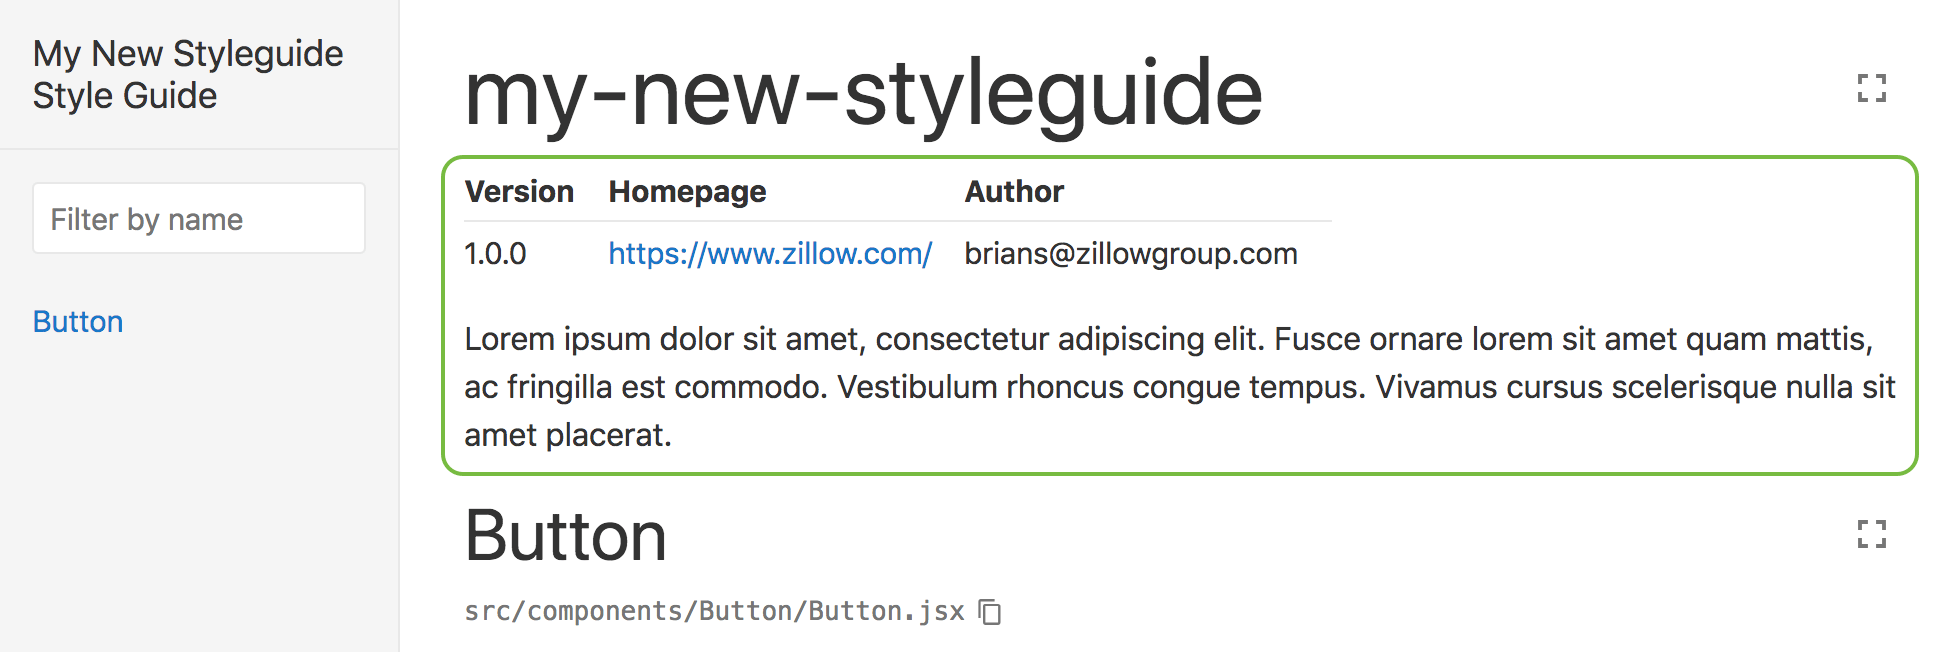 Customized style guide